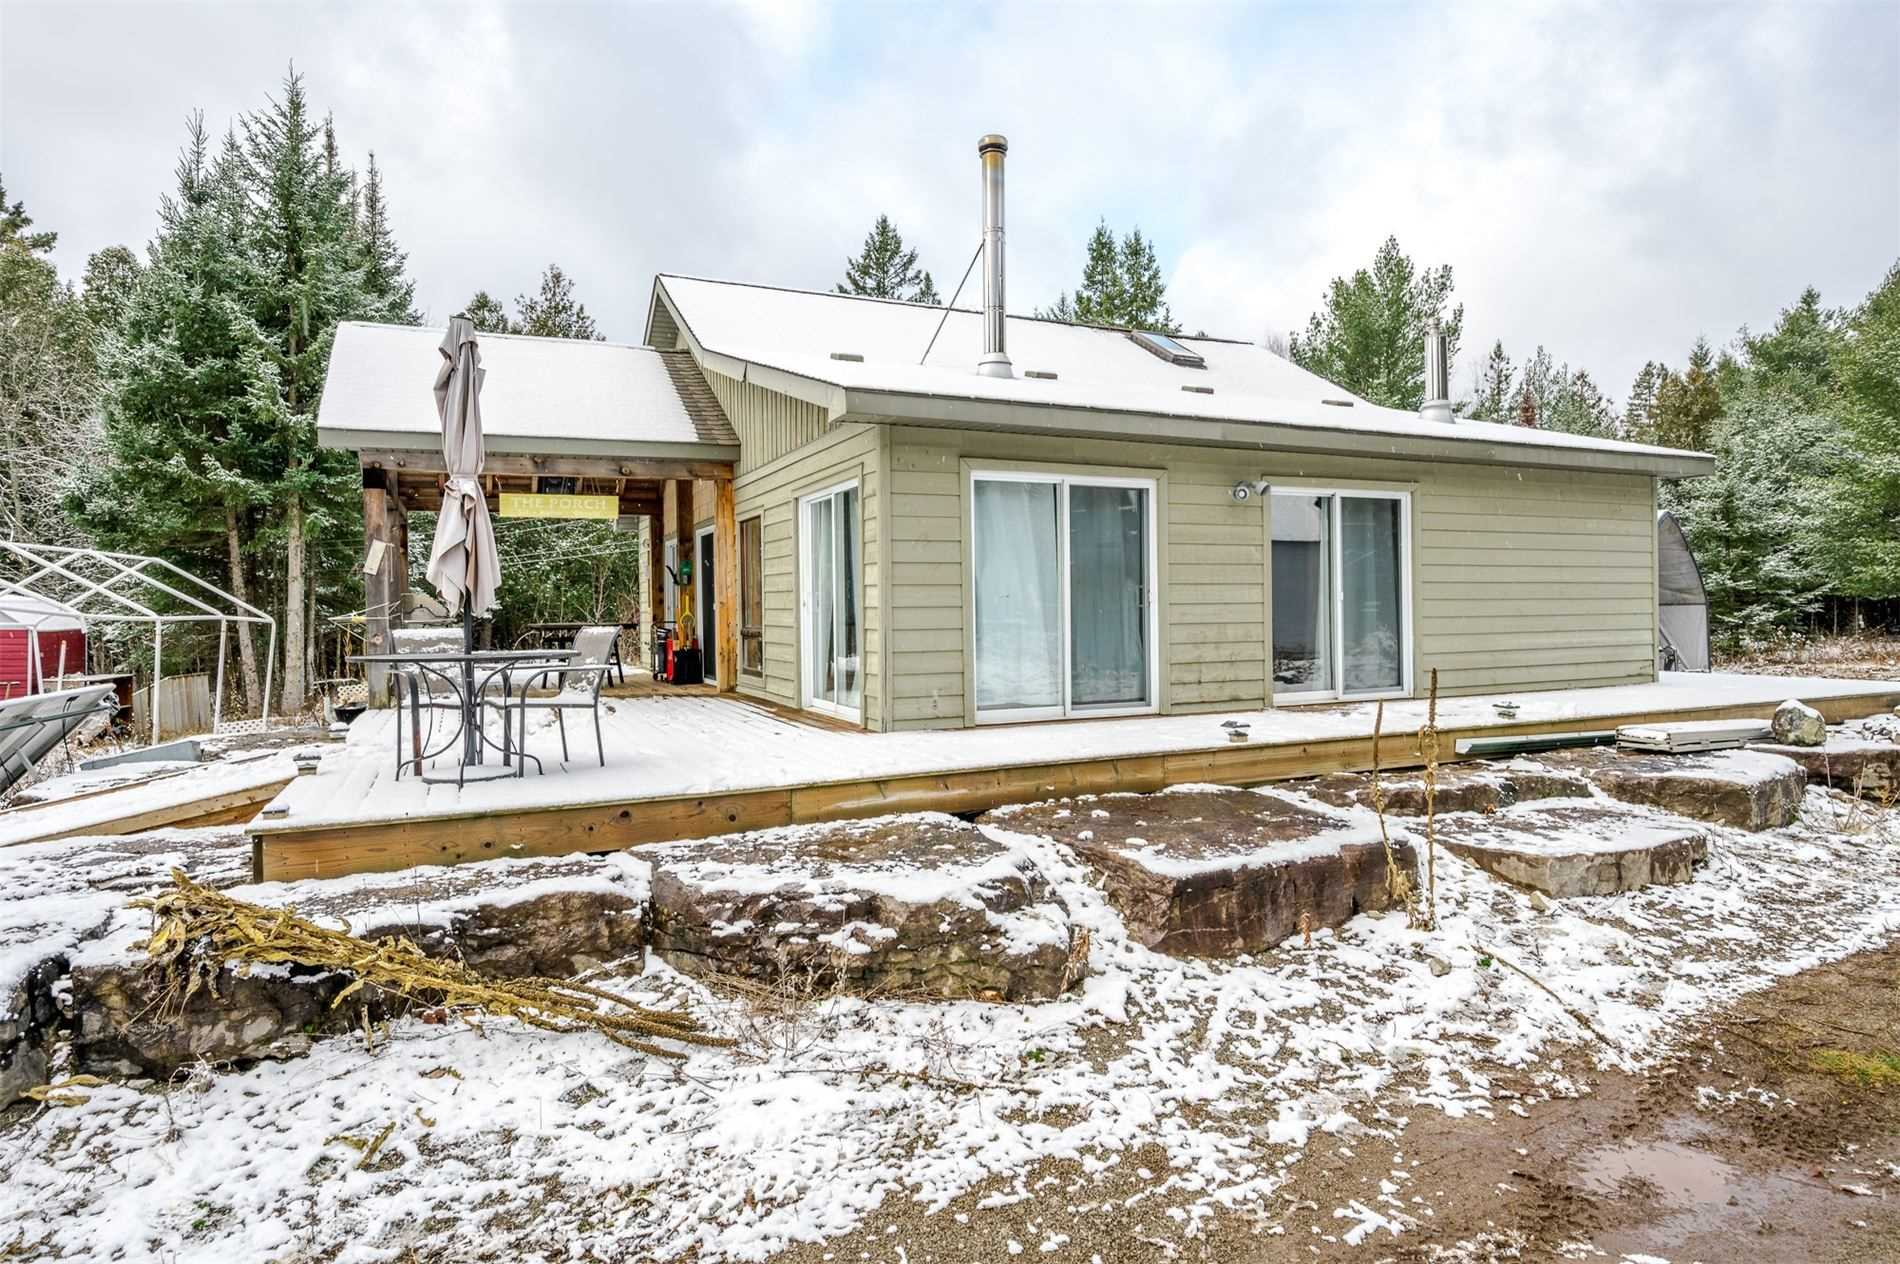 196+ Beautifully Treed Acres W/ Wildlife Galore. Pictures Don't Do The Property Justice. Total Privacy. Yr Round Home W/ 3 Bdrm's + Loft, Open Plan Living/Kit., 3 Pc. Bath, Drilled Well W/ Lots Of Water, Septic, Propane & Wood Stoves, Off-Grid W/ Generator Wired In, Wrap Around Deck + Covered Porch, Det. Shop. To Be Purchased For Personal Use & Enjoyment Only. Buyer Agents & Buyers To Adhere To All Health & Safety Protocols As Outlined In Rlp Showing Policy.